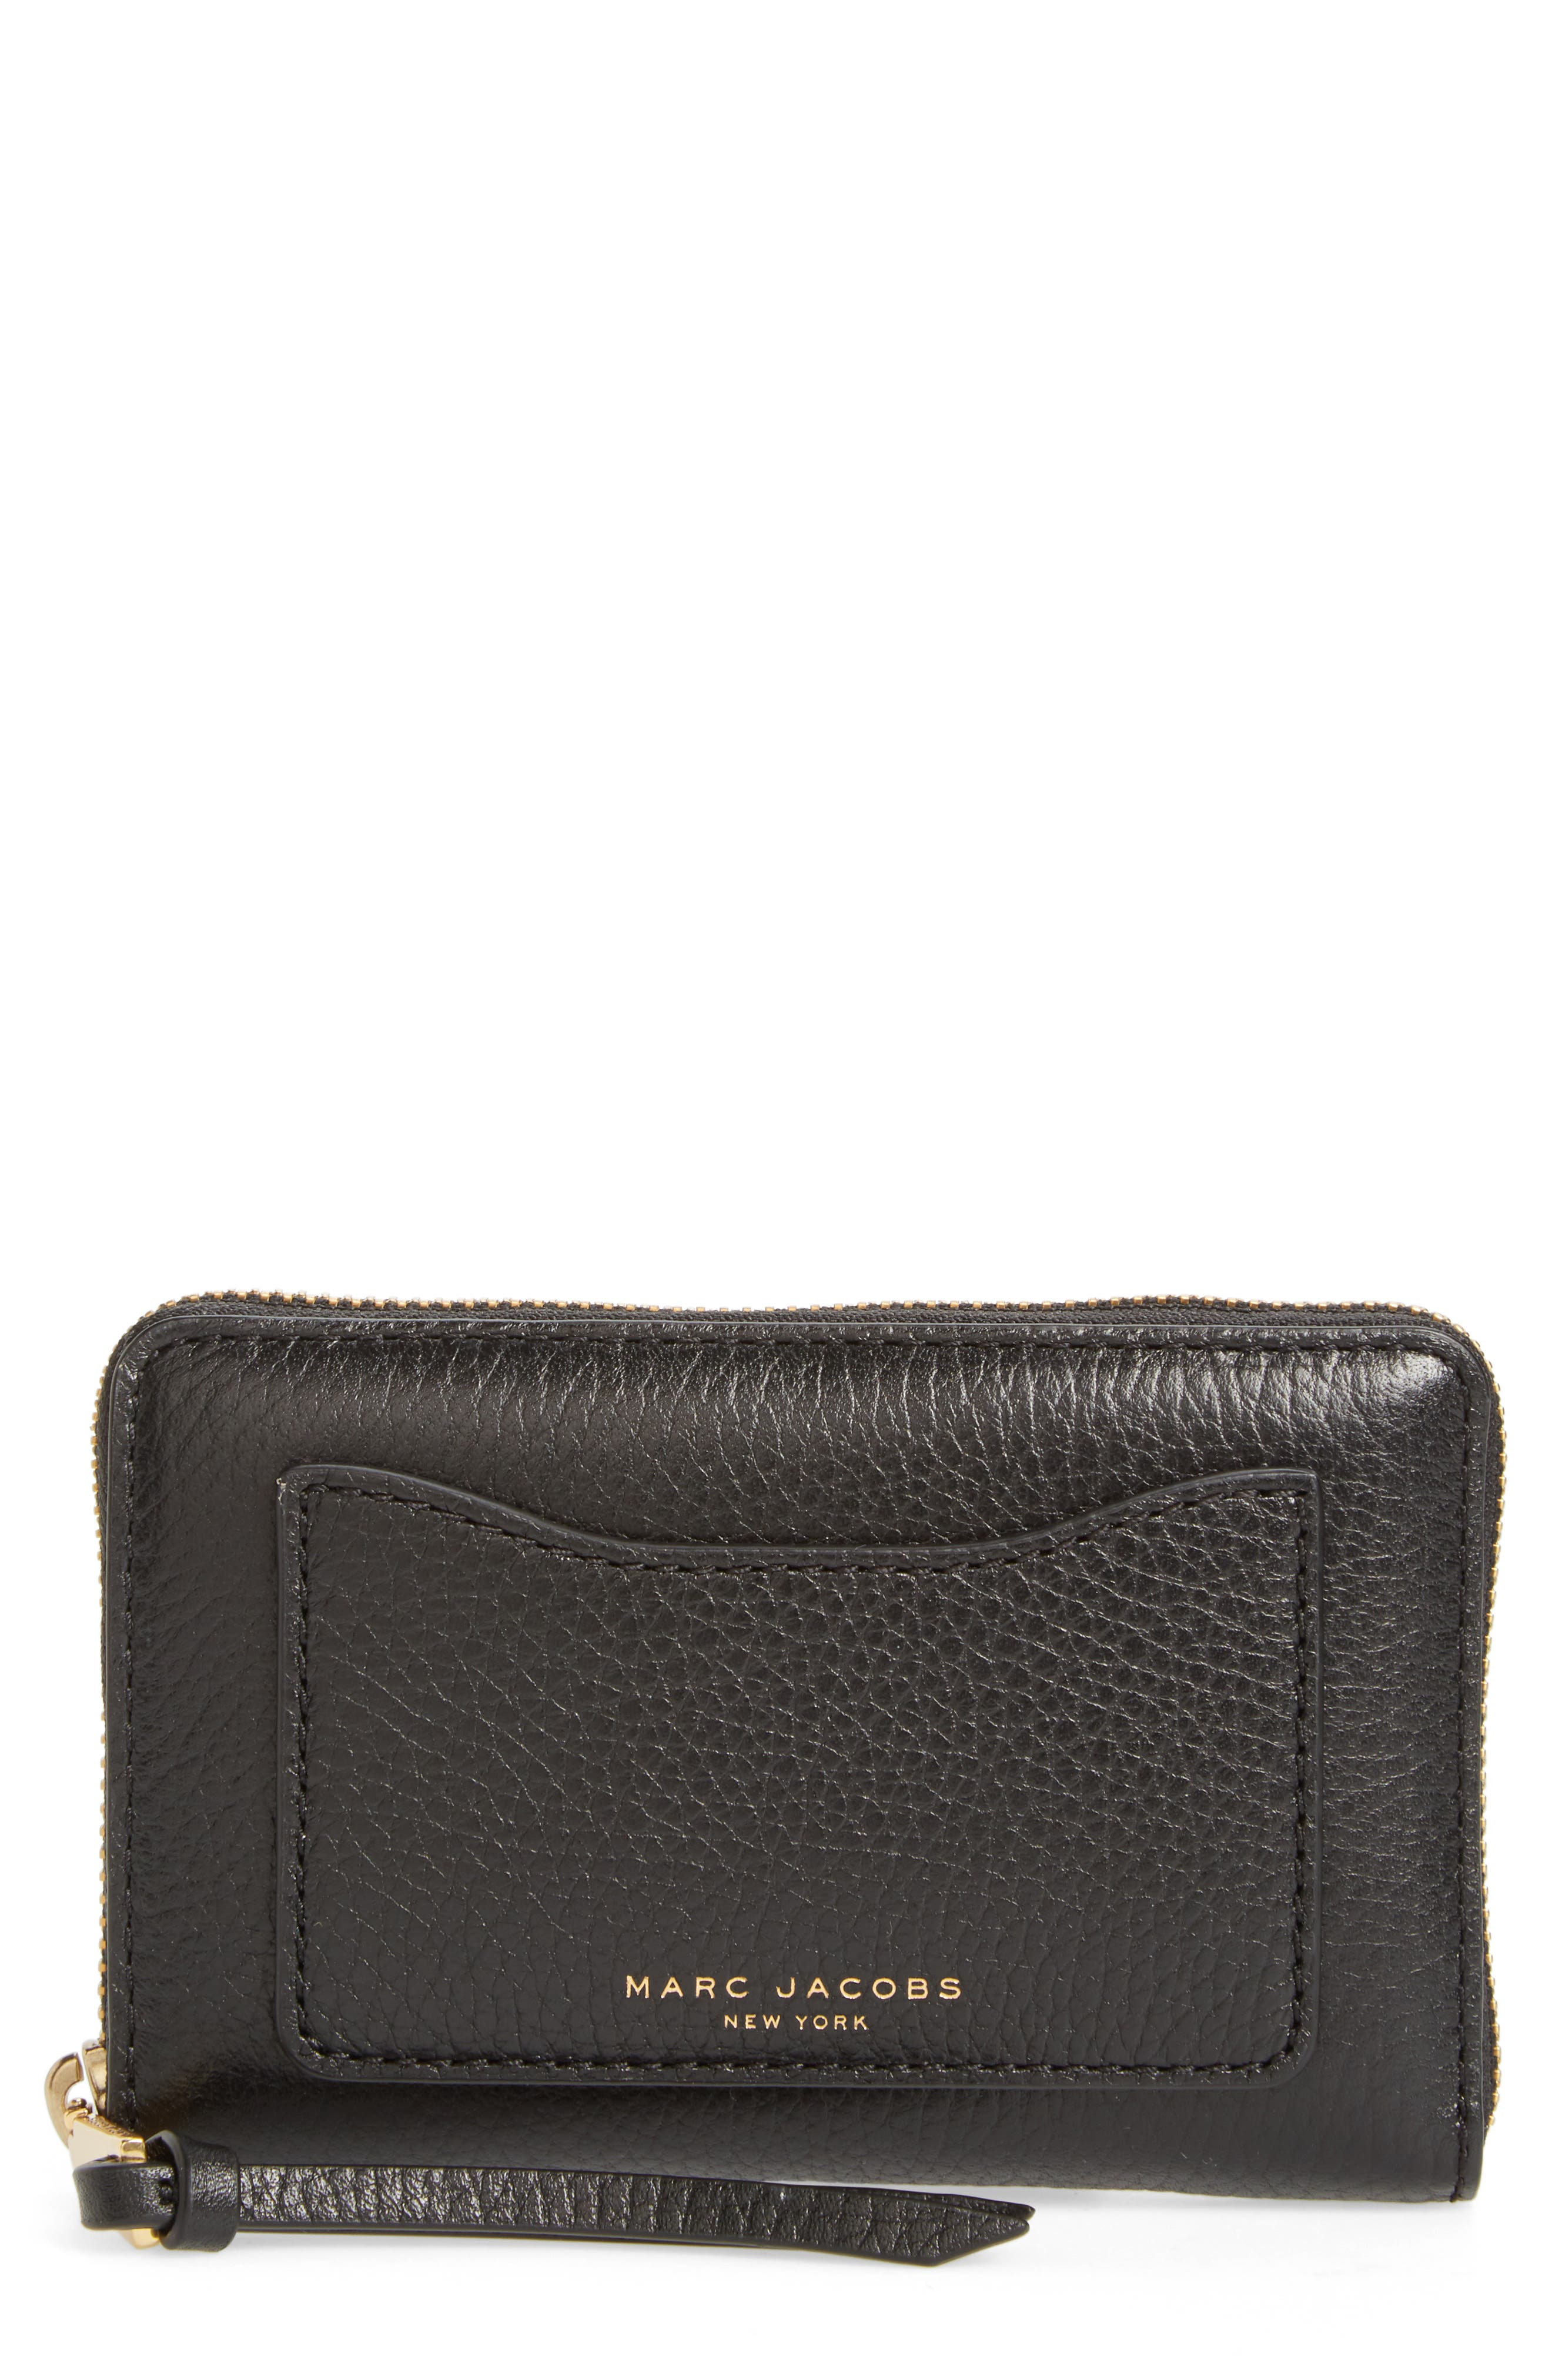 Small Recruit Standard Continental Wallet,                             Main thumbnail 1, color,                             001